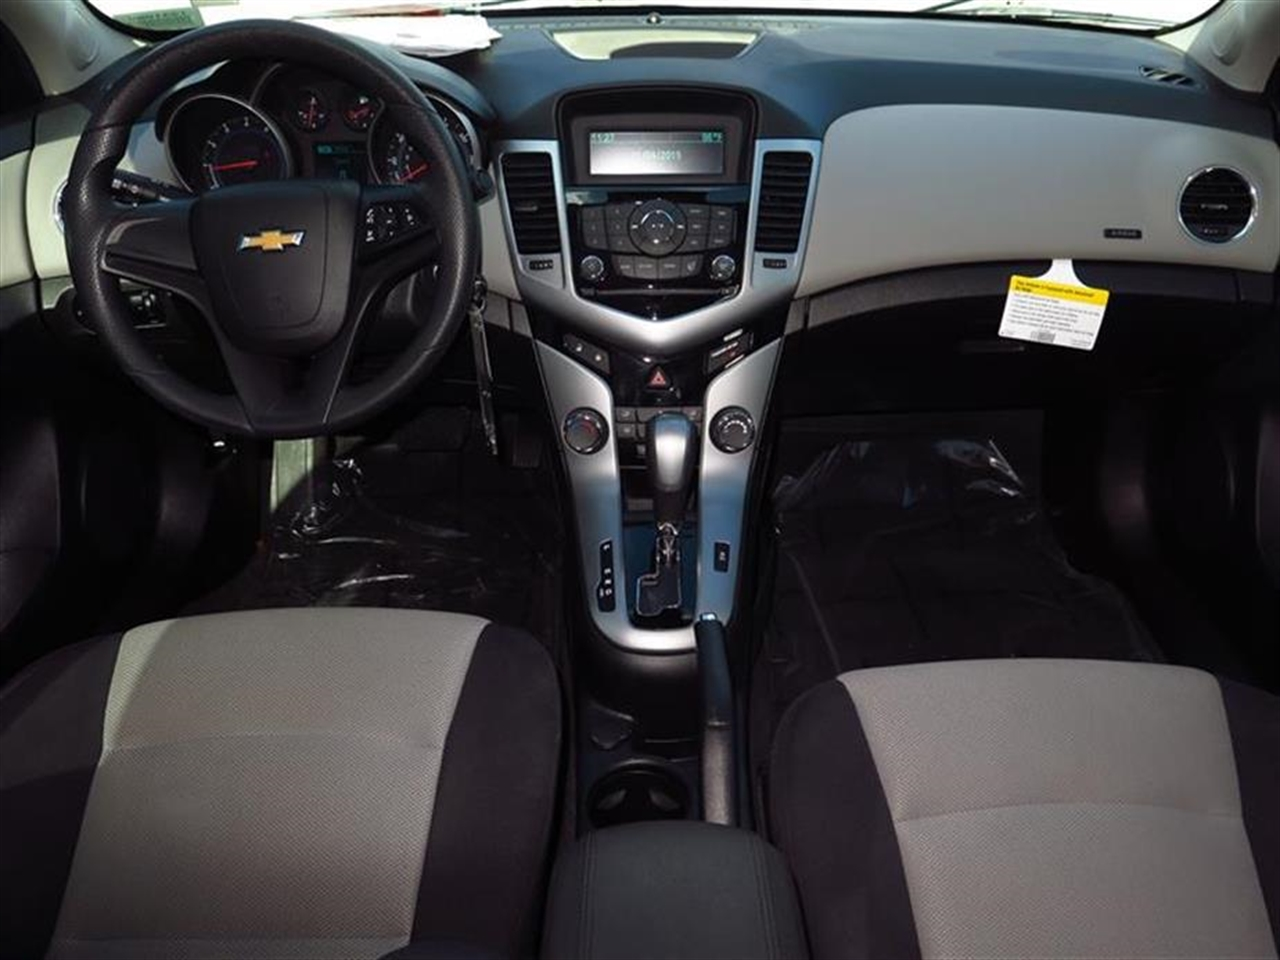 2013 CHEVROLET CRUZE 4dr Sdn Auto LS 40522 miles Air conditioning single-zone electronic includ